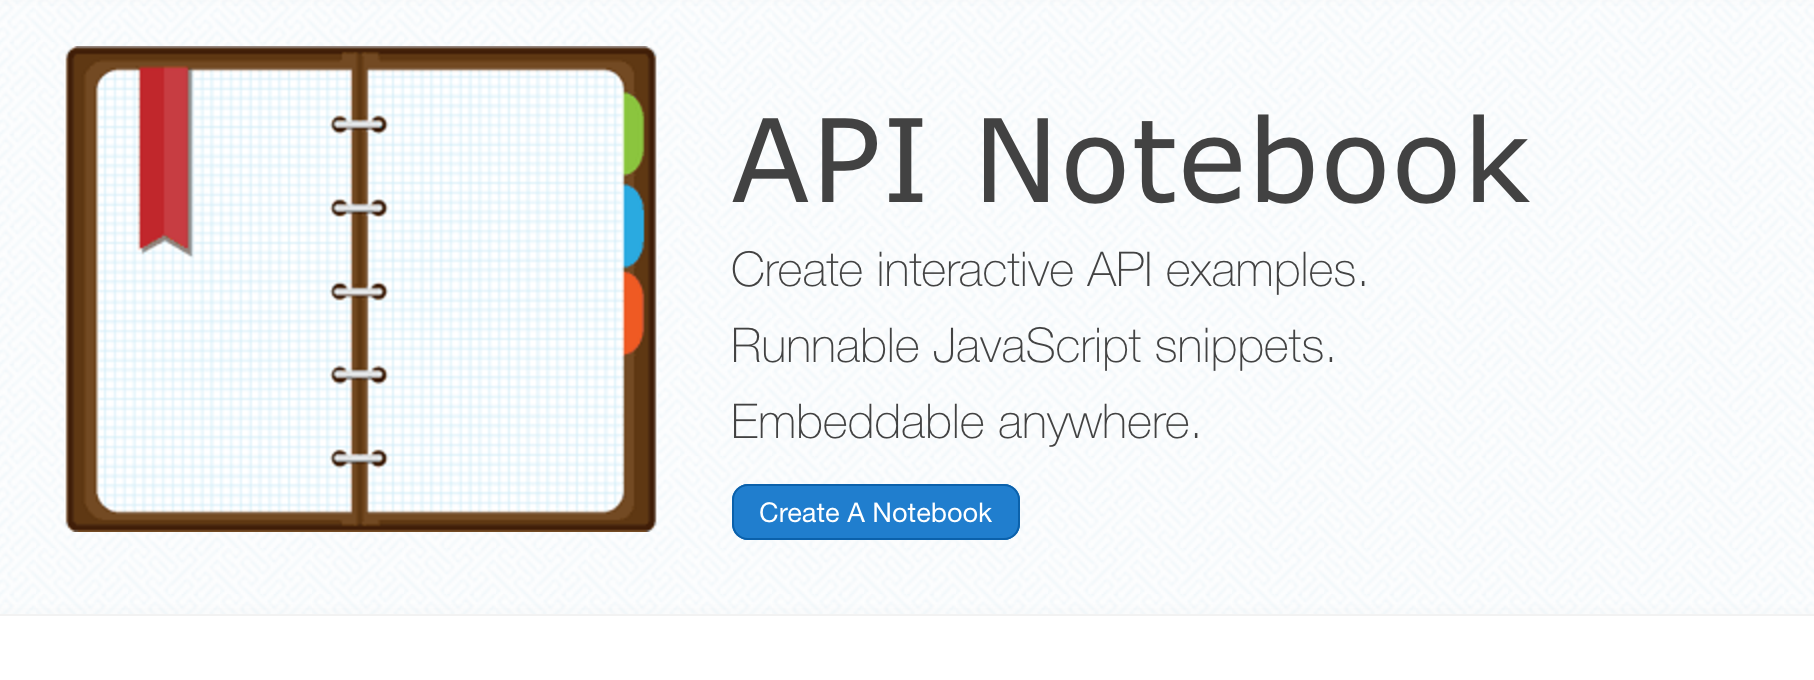 Best practices and tools for documenting apis programmableweb api notebook is another open source tool from mulesoft that allows for the automatic generation of code snippets in javascript malvernweather Gallery